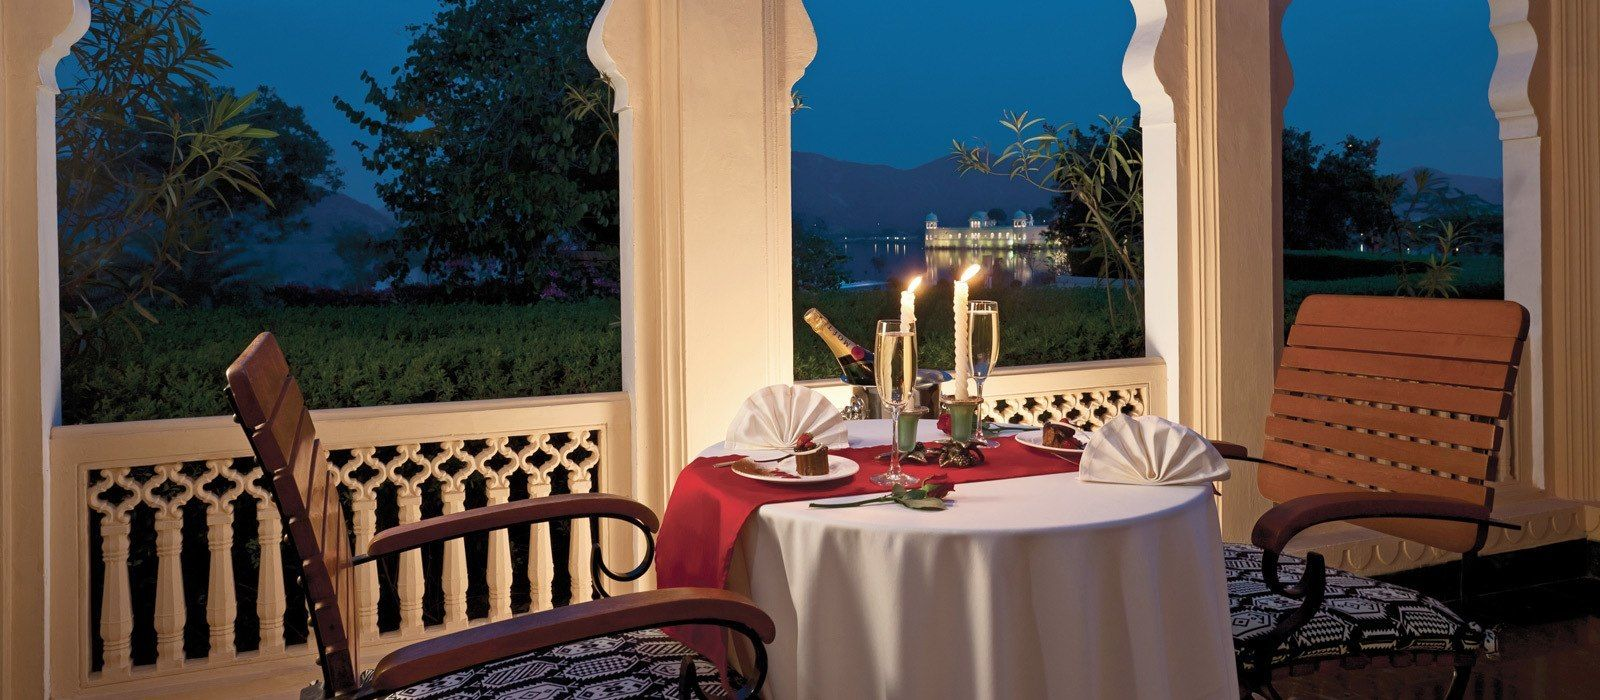 Hotel The Trident Jaipur Nordindien